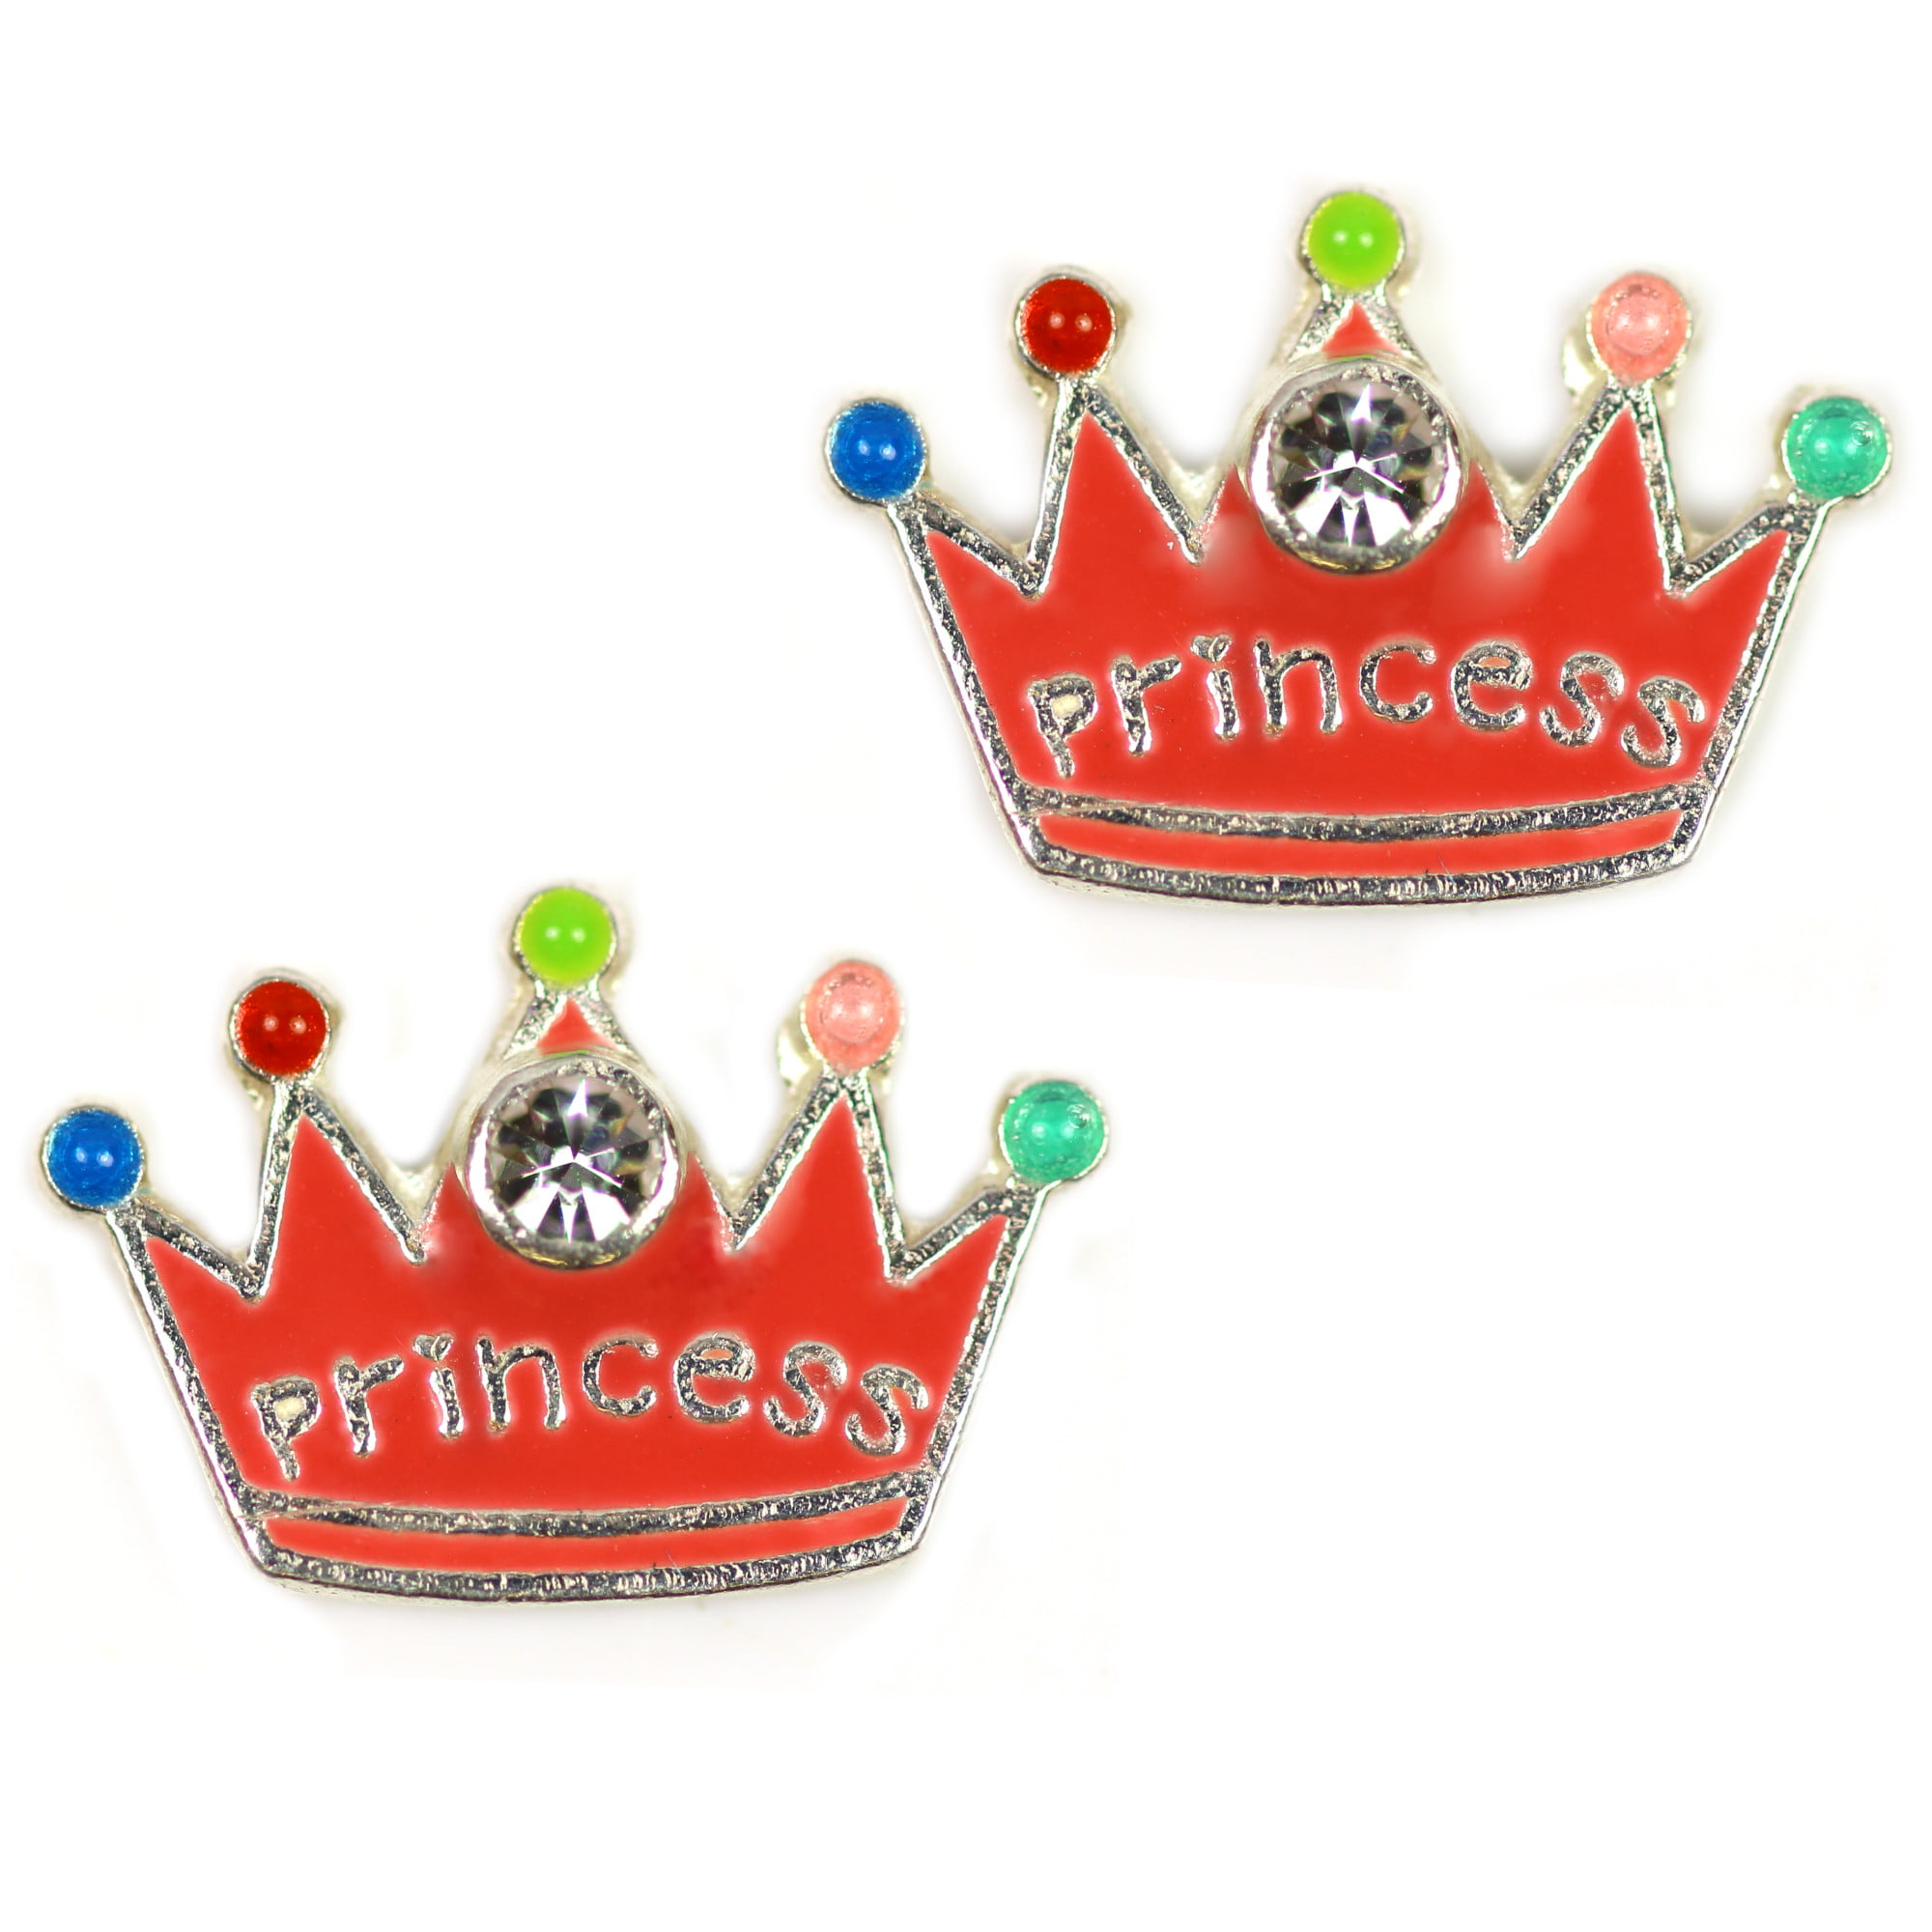 Princess crown earrings in sterling silver